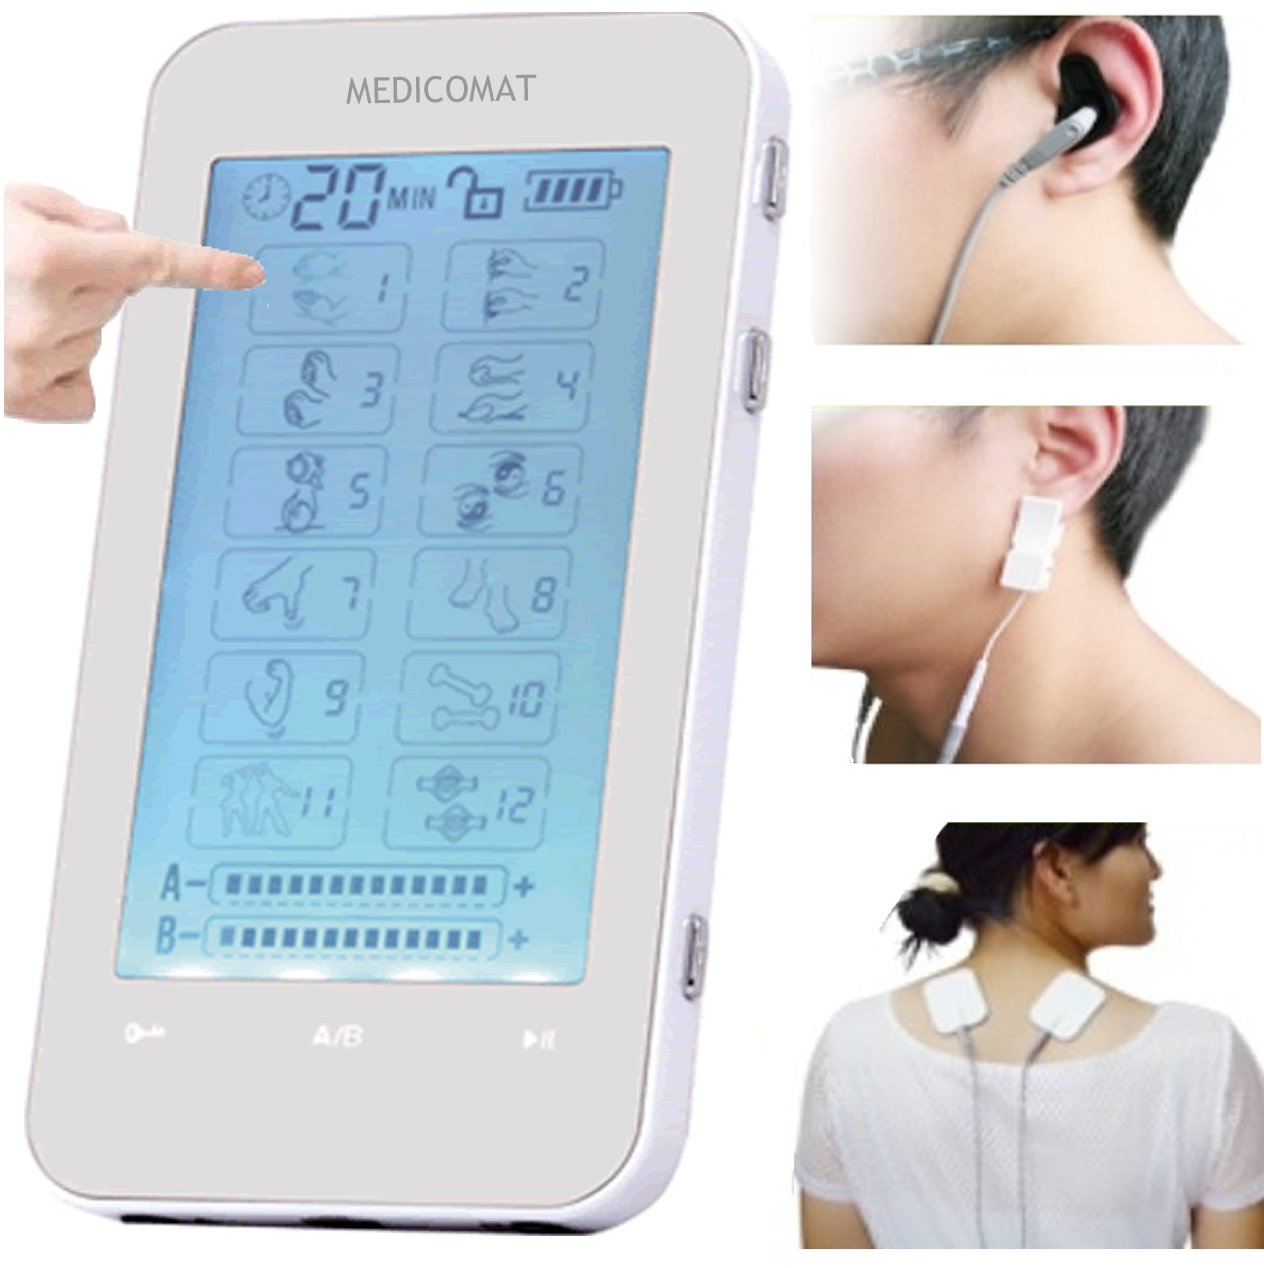 Acupuncture Stress Depression Anxiety Medicomat-3 Electronics Acupuncture